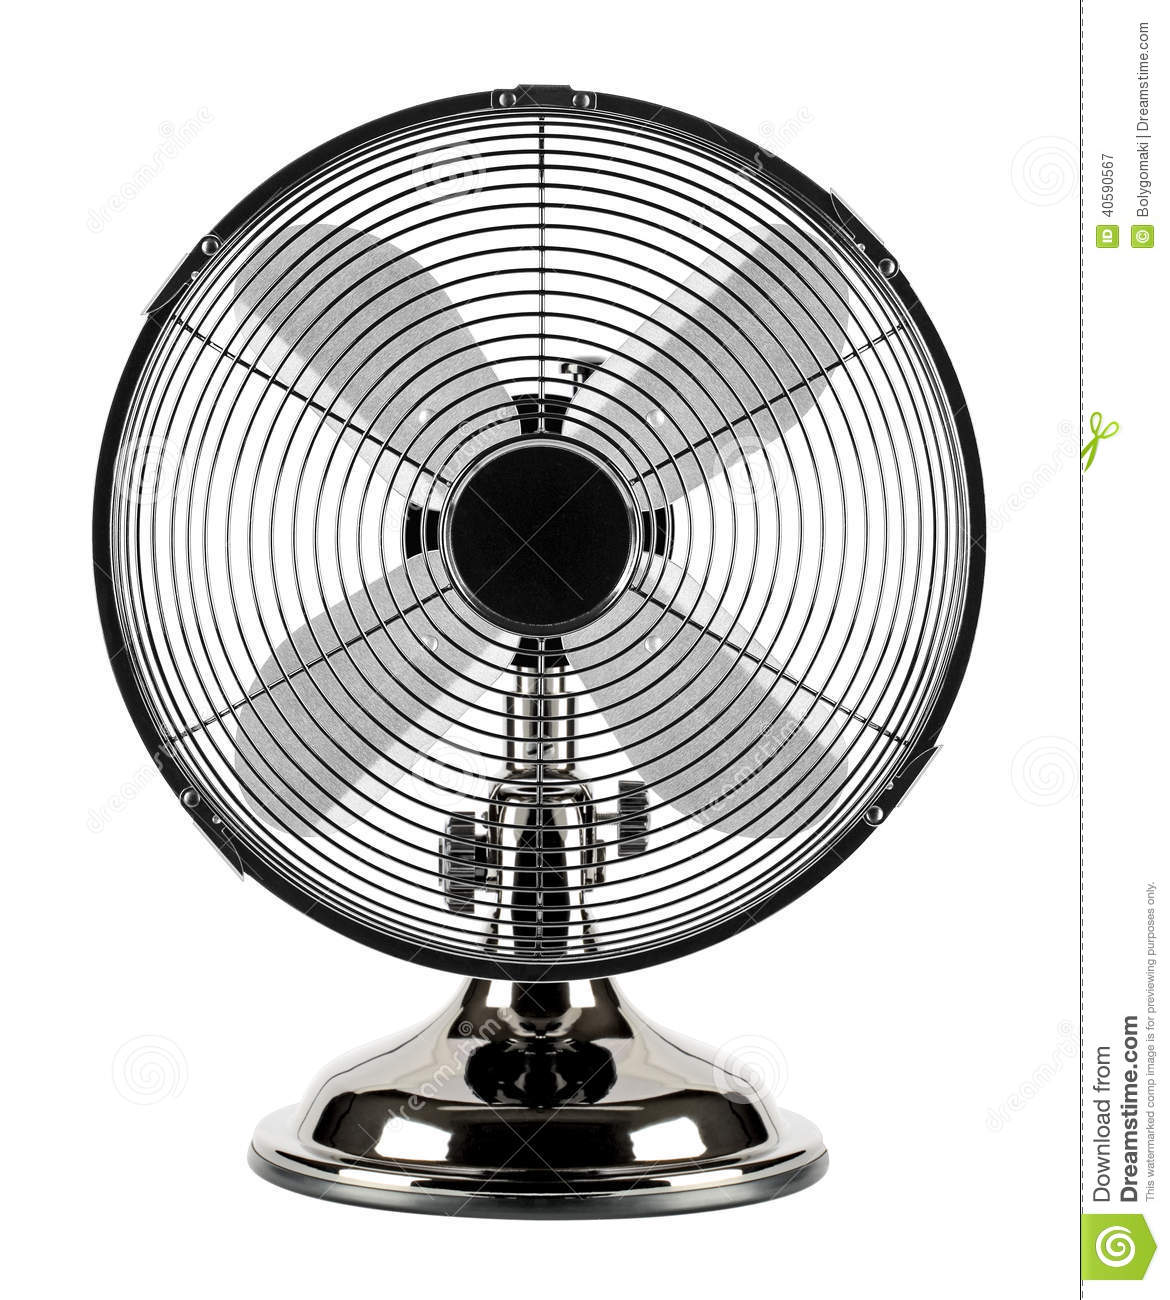 Electric fan stock image. Image of heat, rotary, electric - 40590567